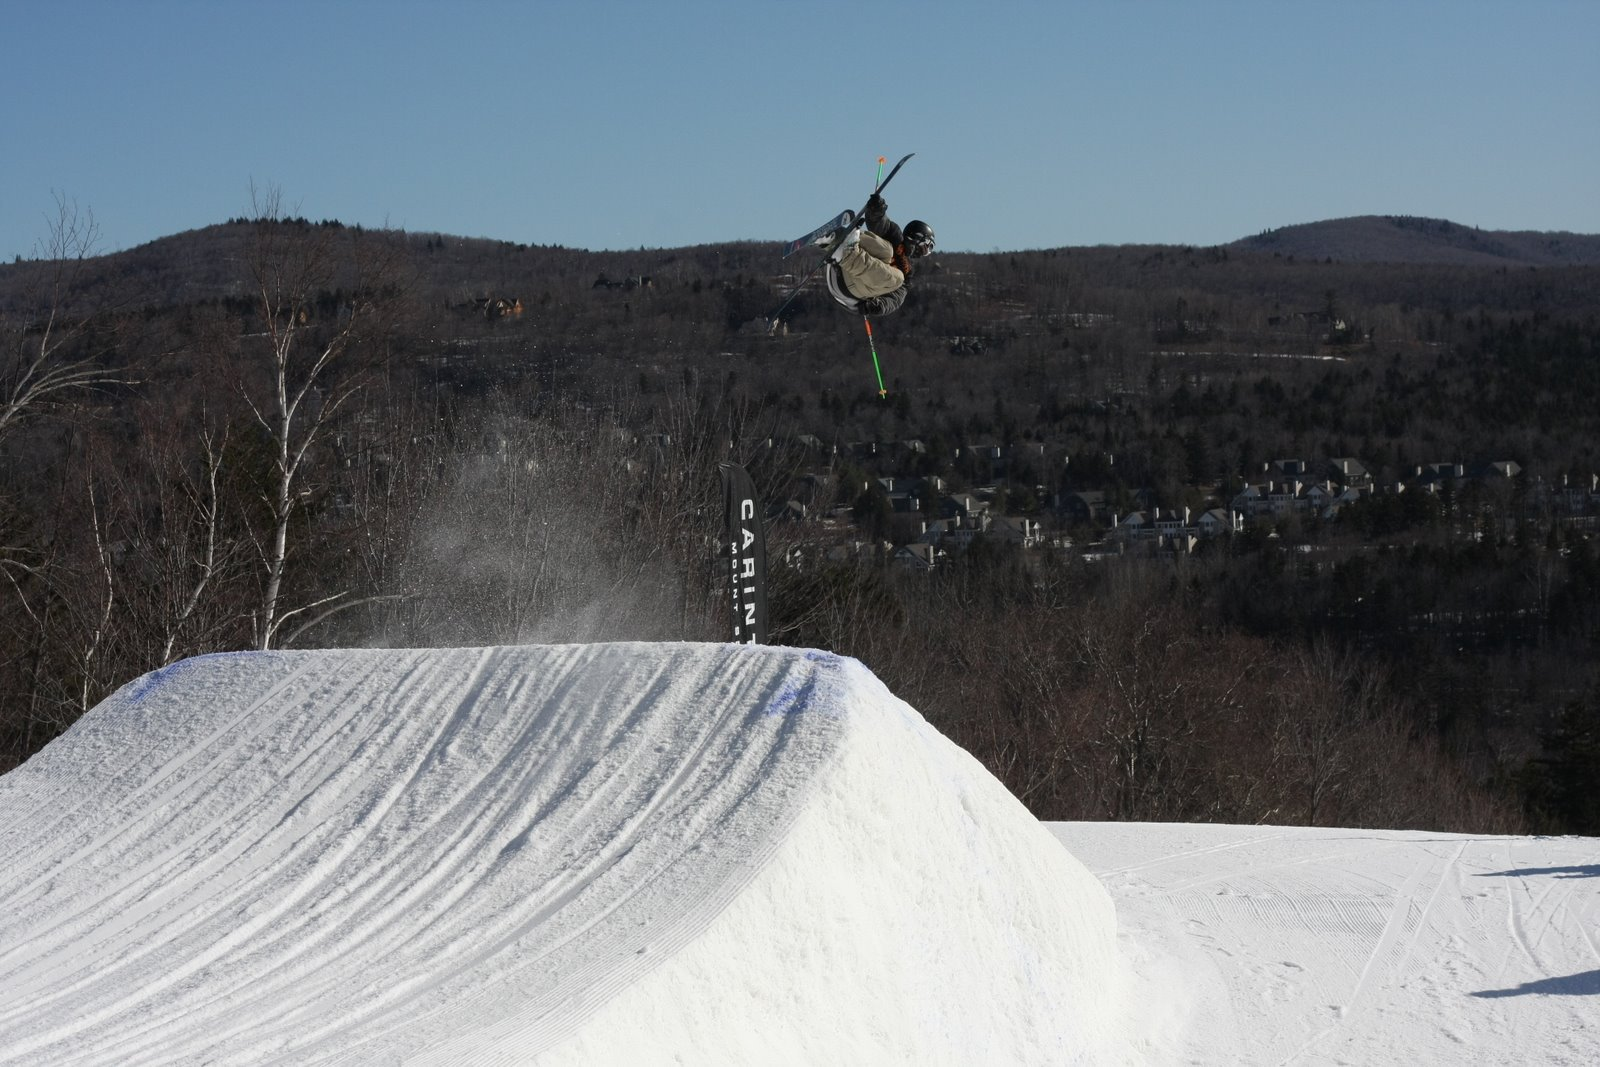 Rod nine at mt snow